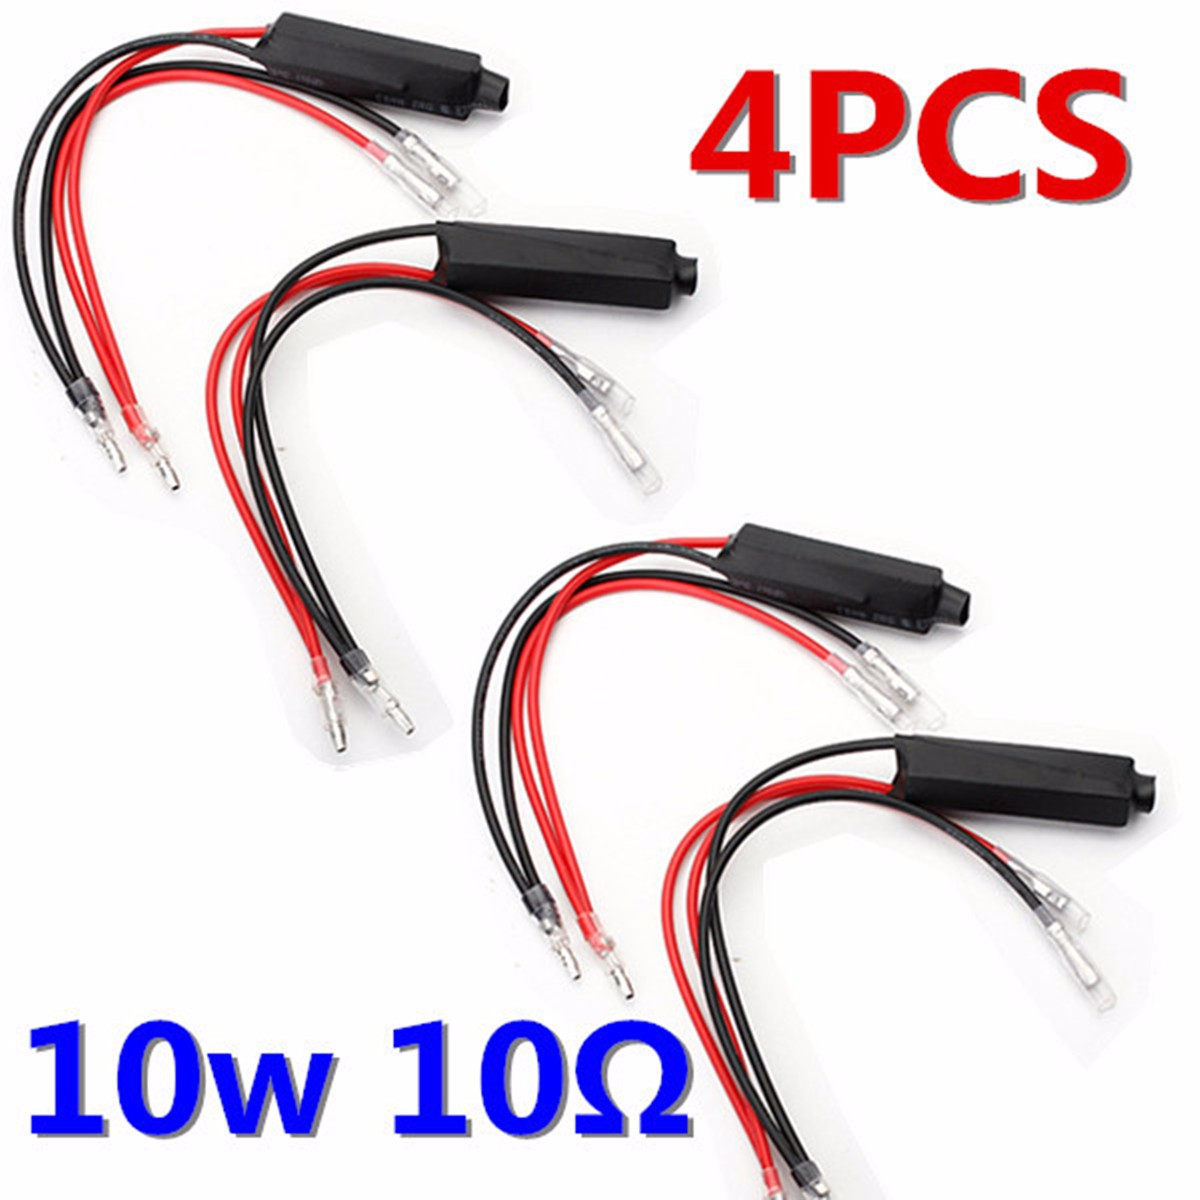 Adaptor Signal-Resistor Indicator Motorcycle Led Universal Turn 4pcs 12V Flash-Controller title=